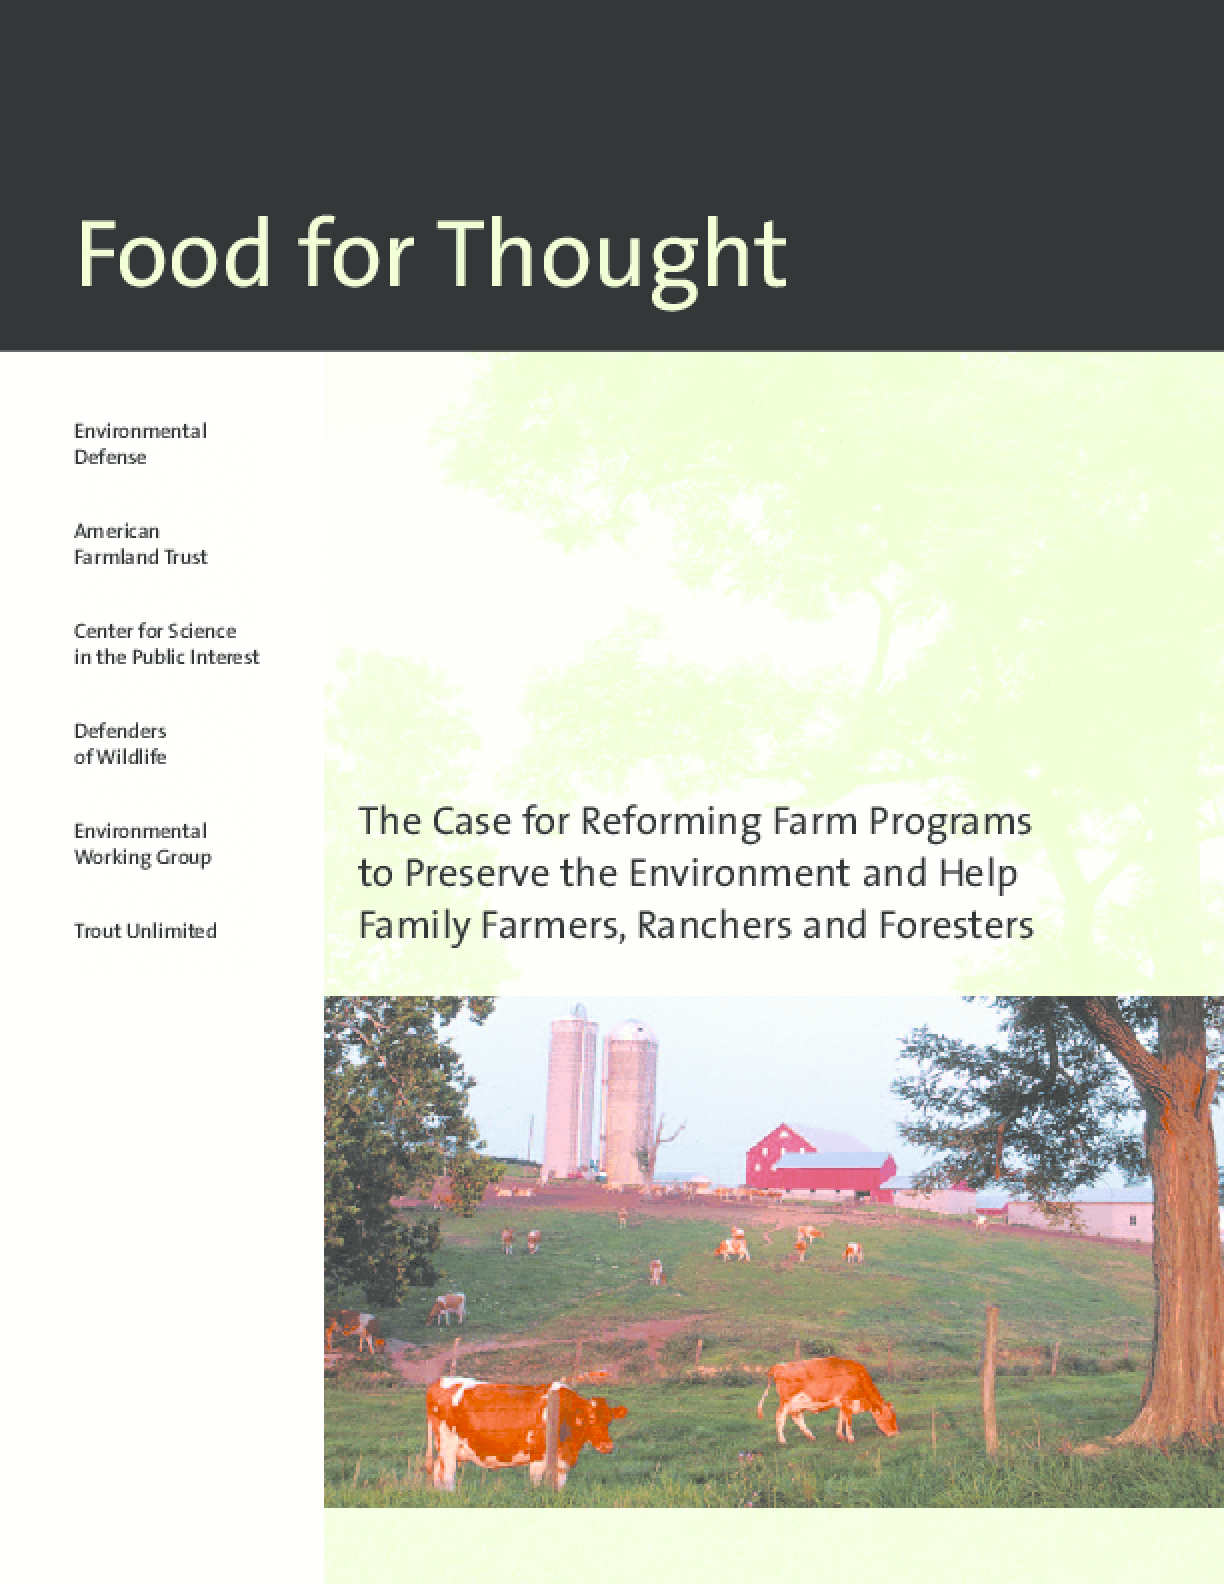 Food for Thought: The Case for Reforming Farm Programs to Preserve the Environment and Help Family Farmers, Ranchers and Foresters